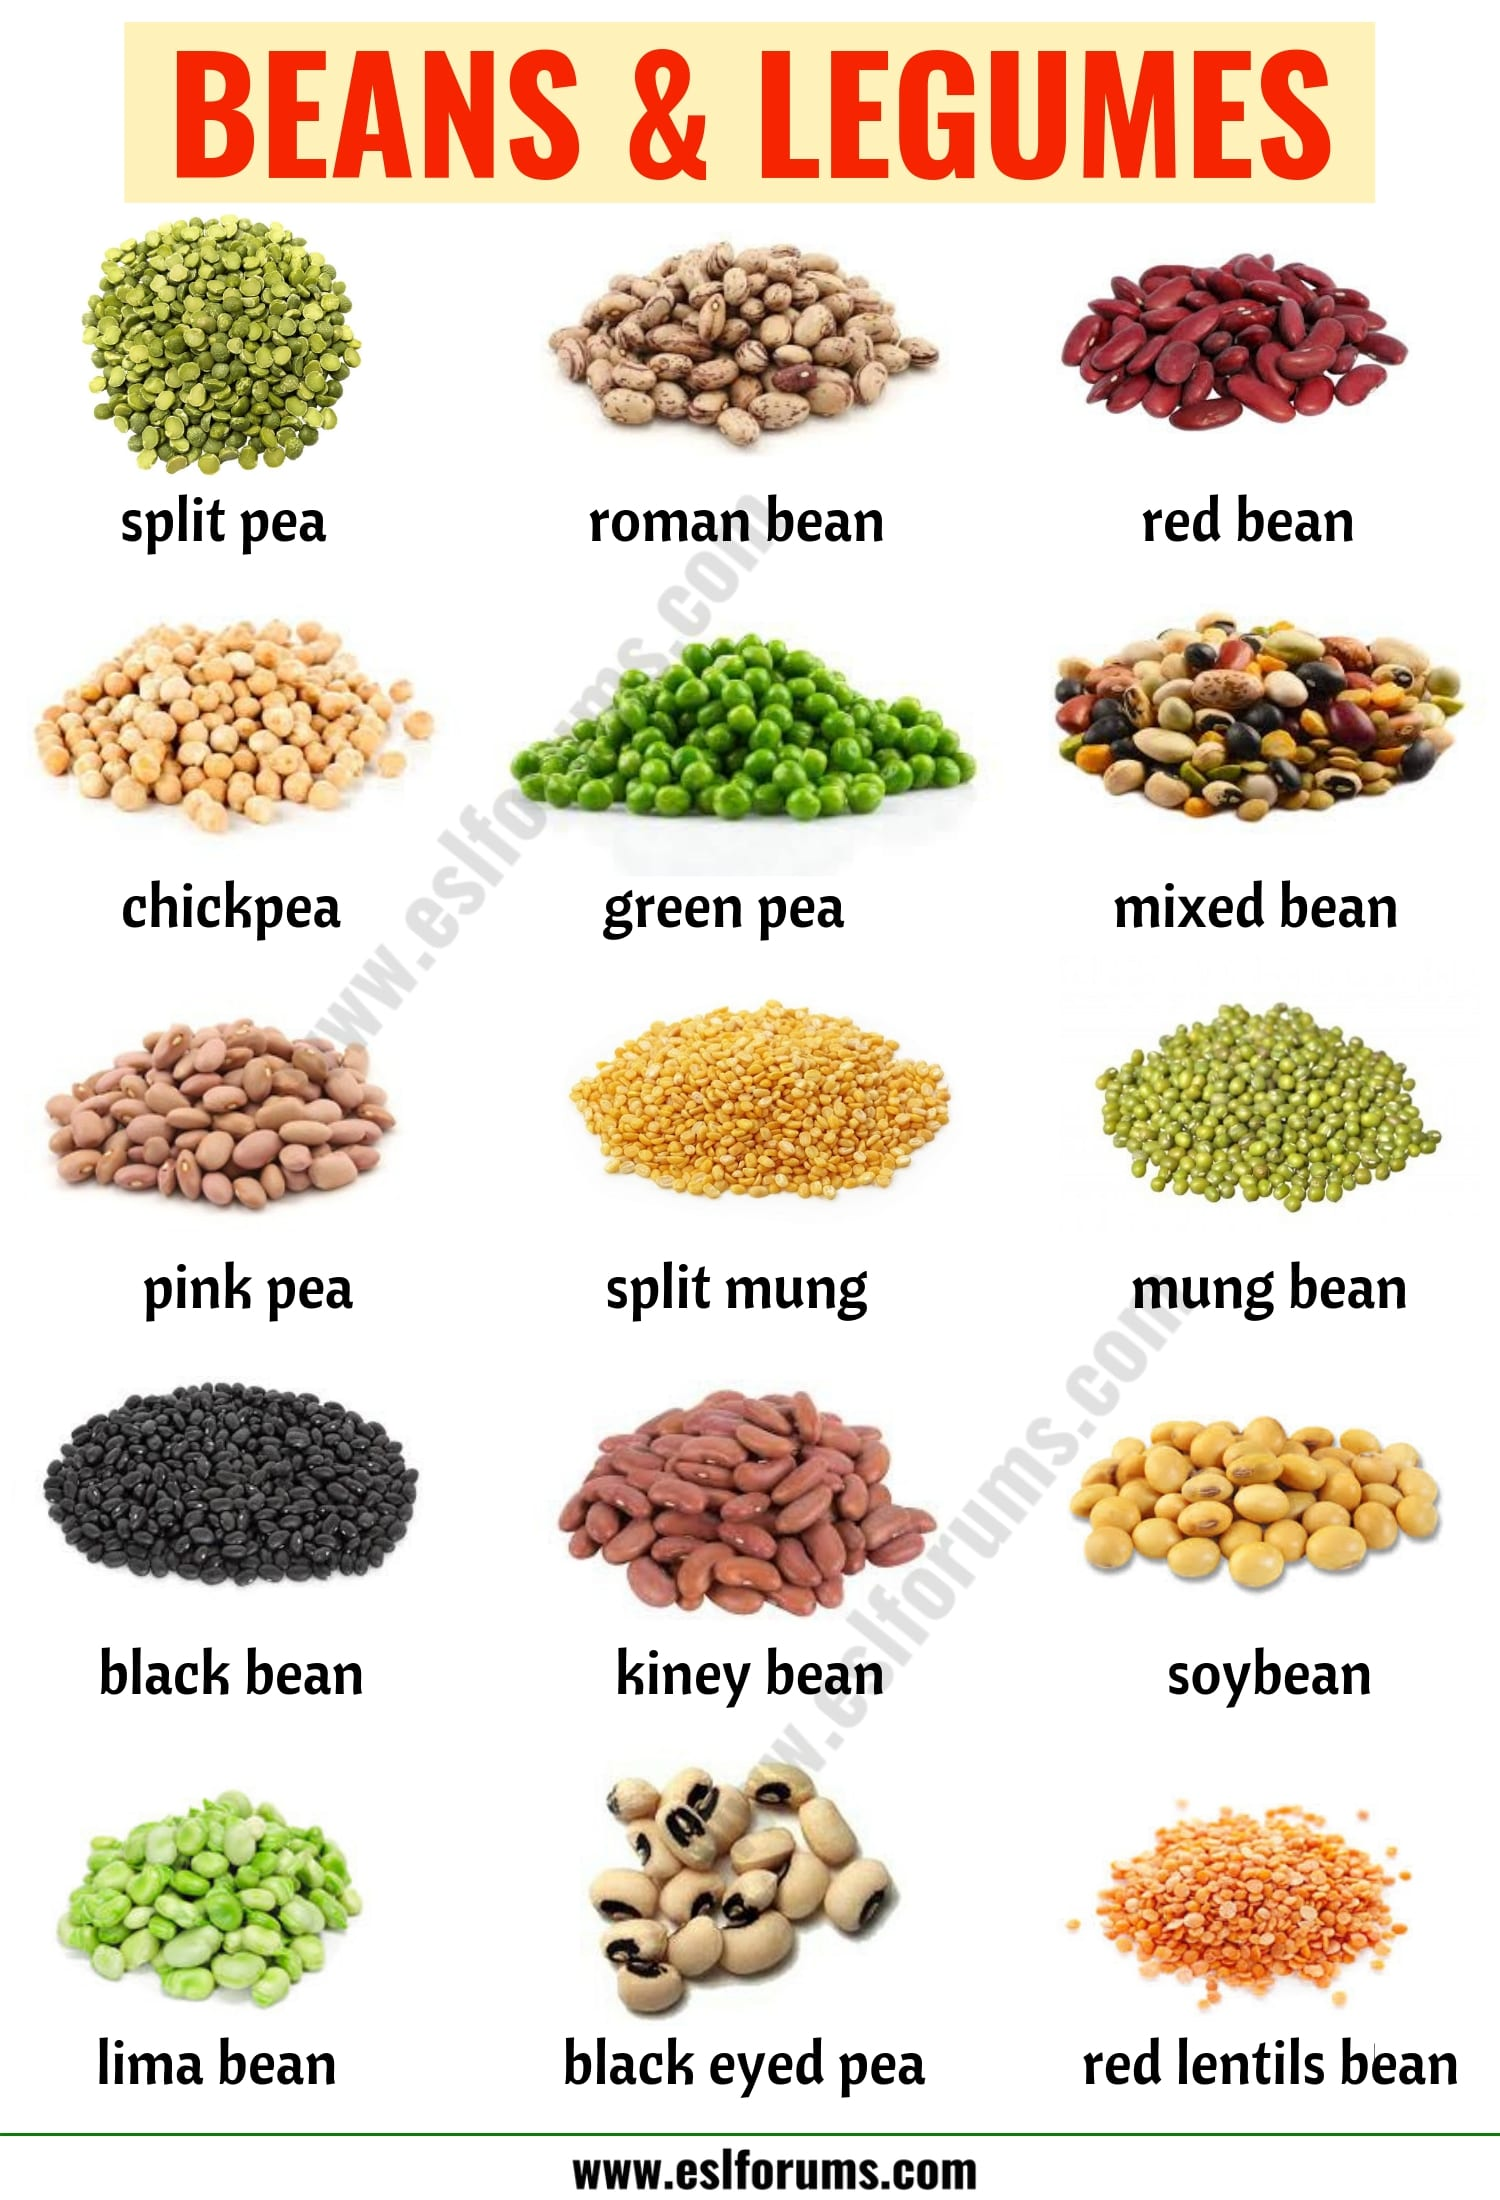 Types of Beans: 15 Different Types of Beans & Legumes with the Picture